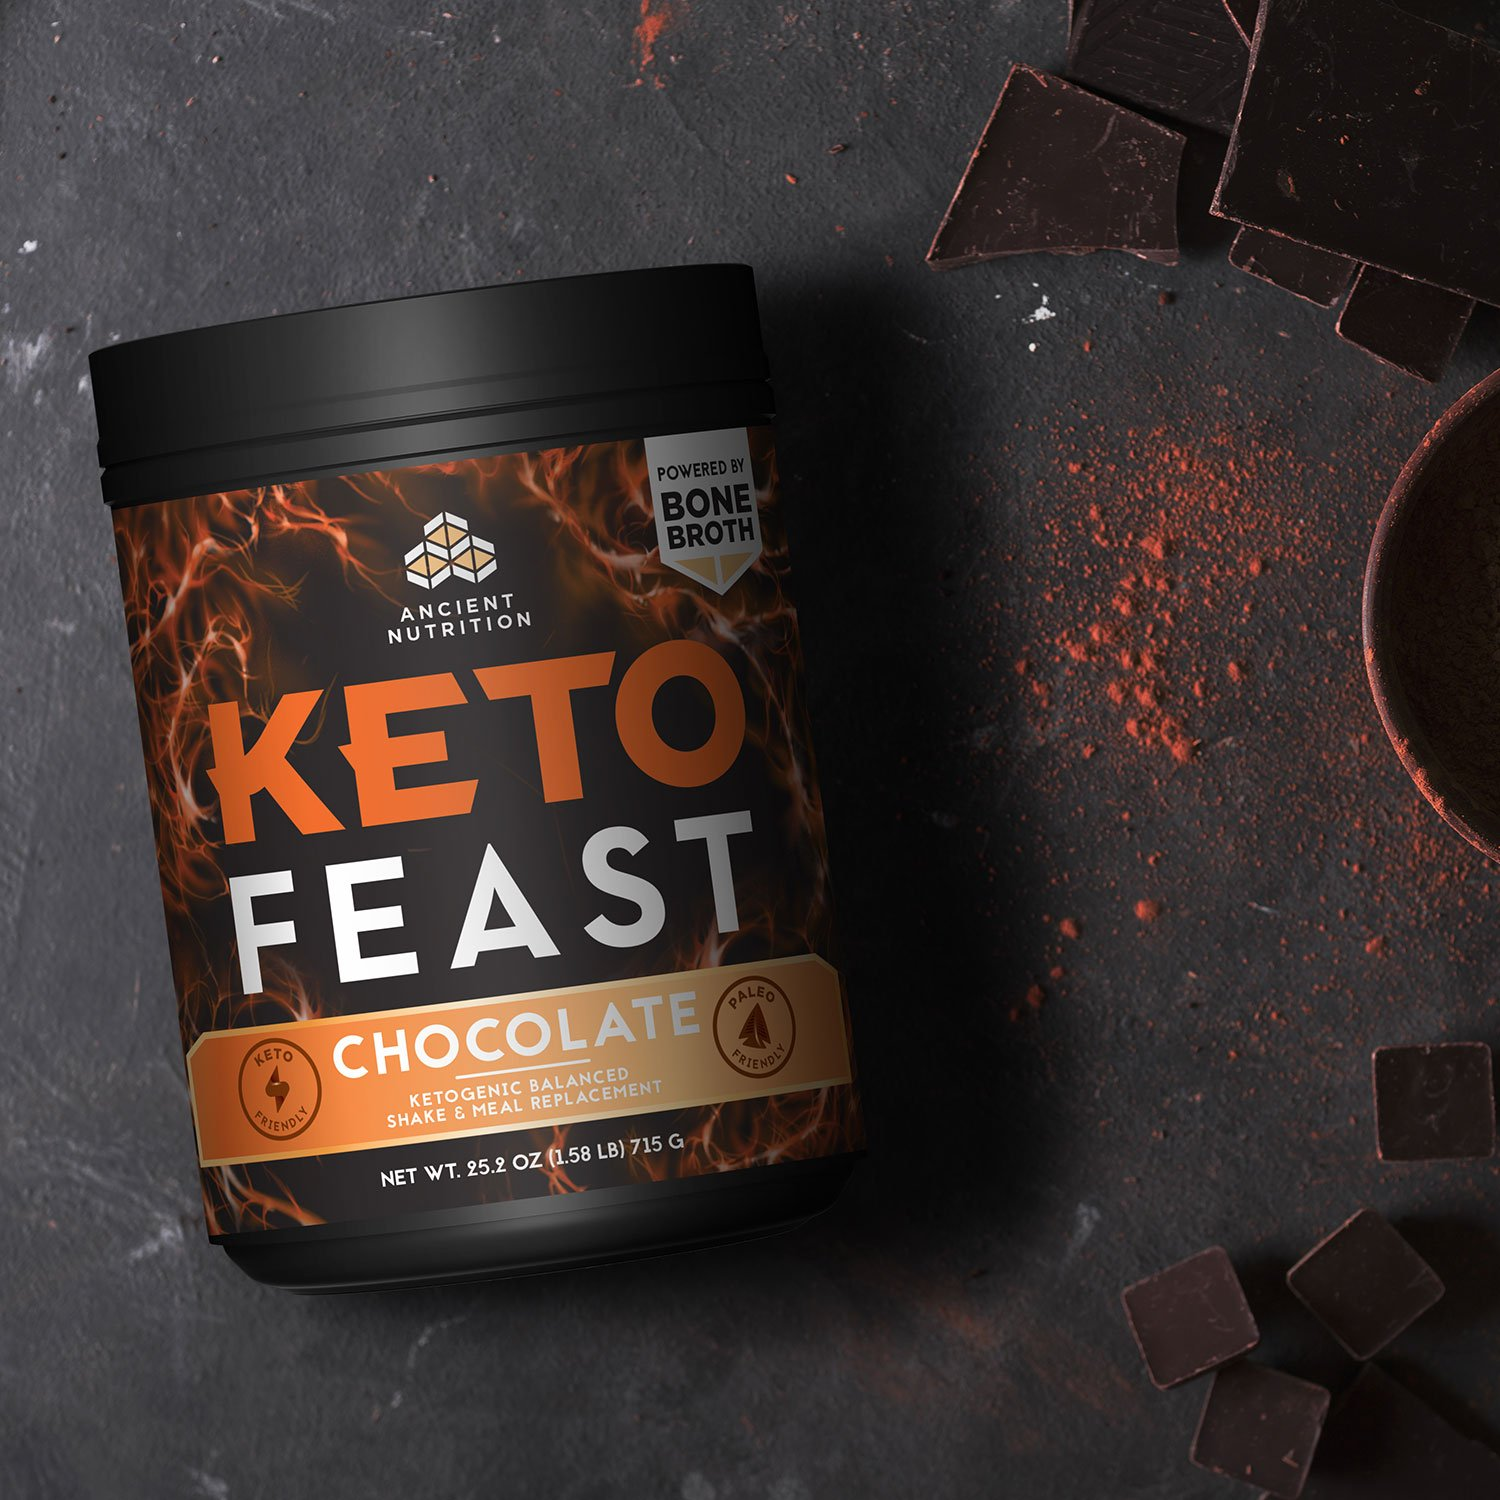 Keto feast bottle in a dark surface with dark chocolate around